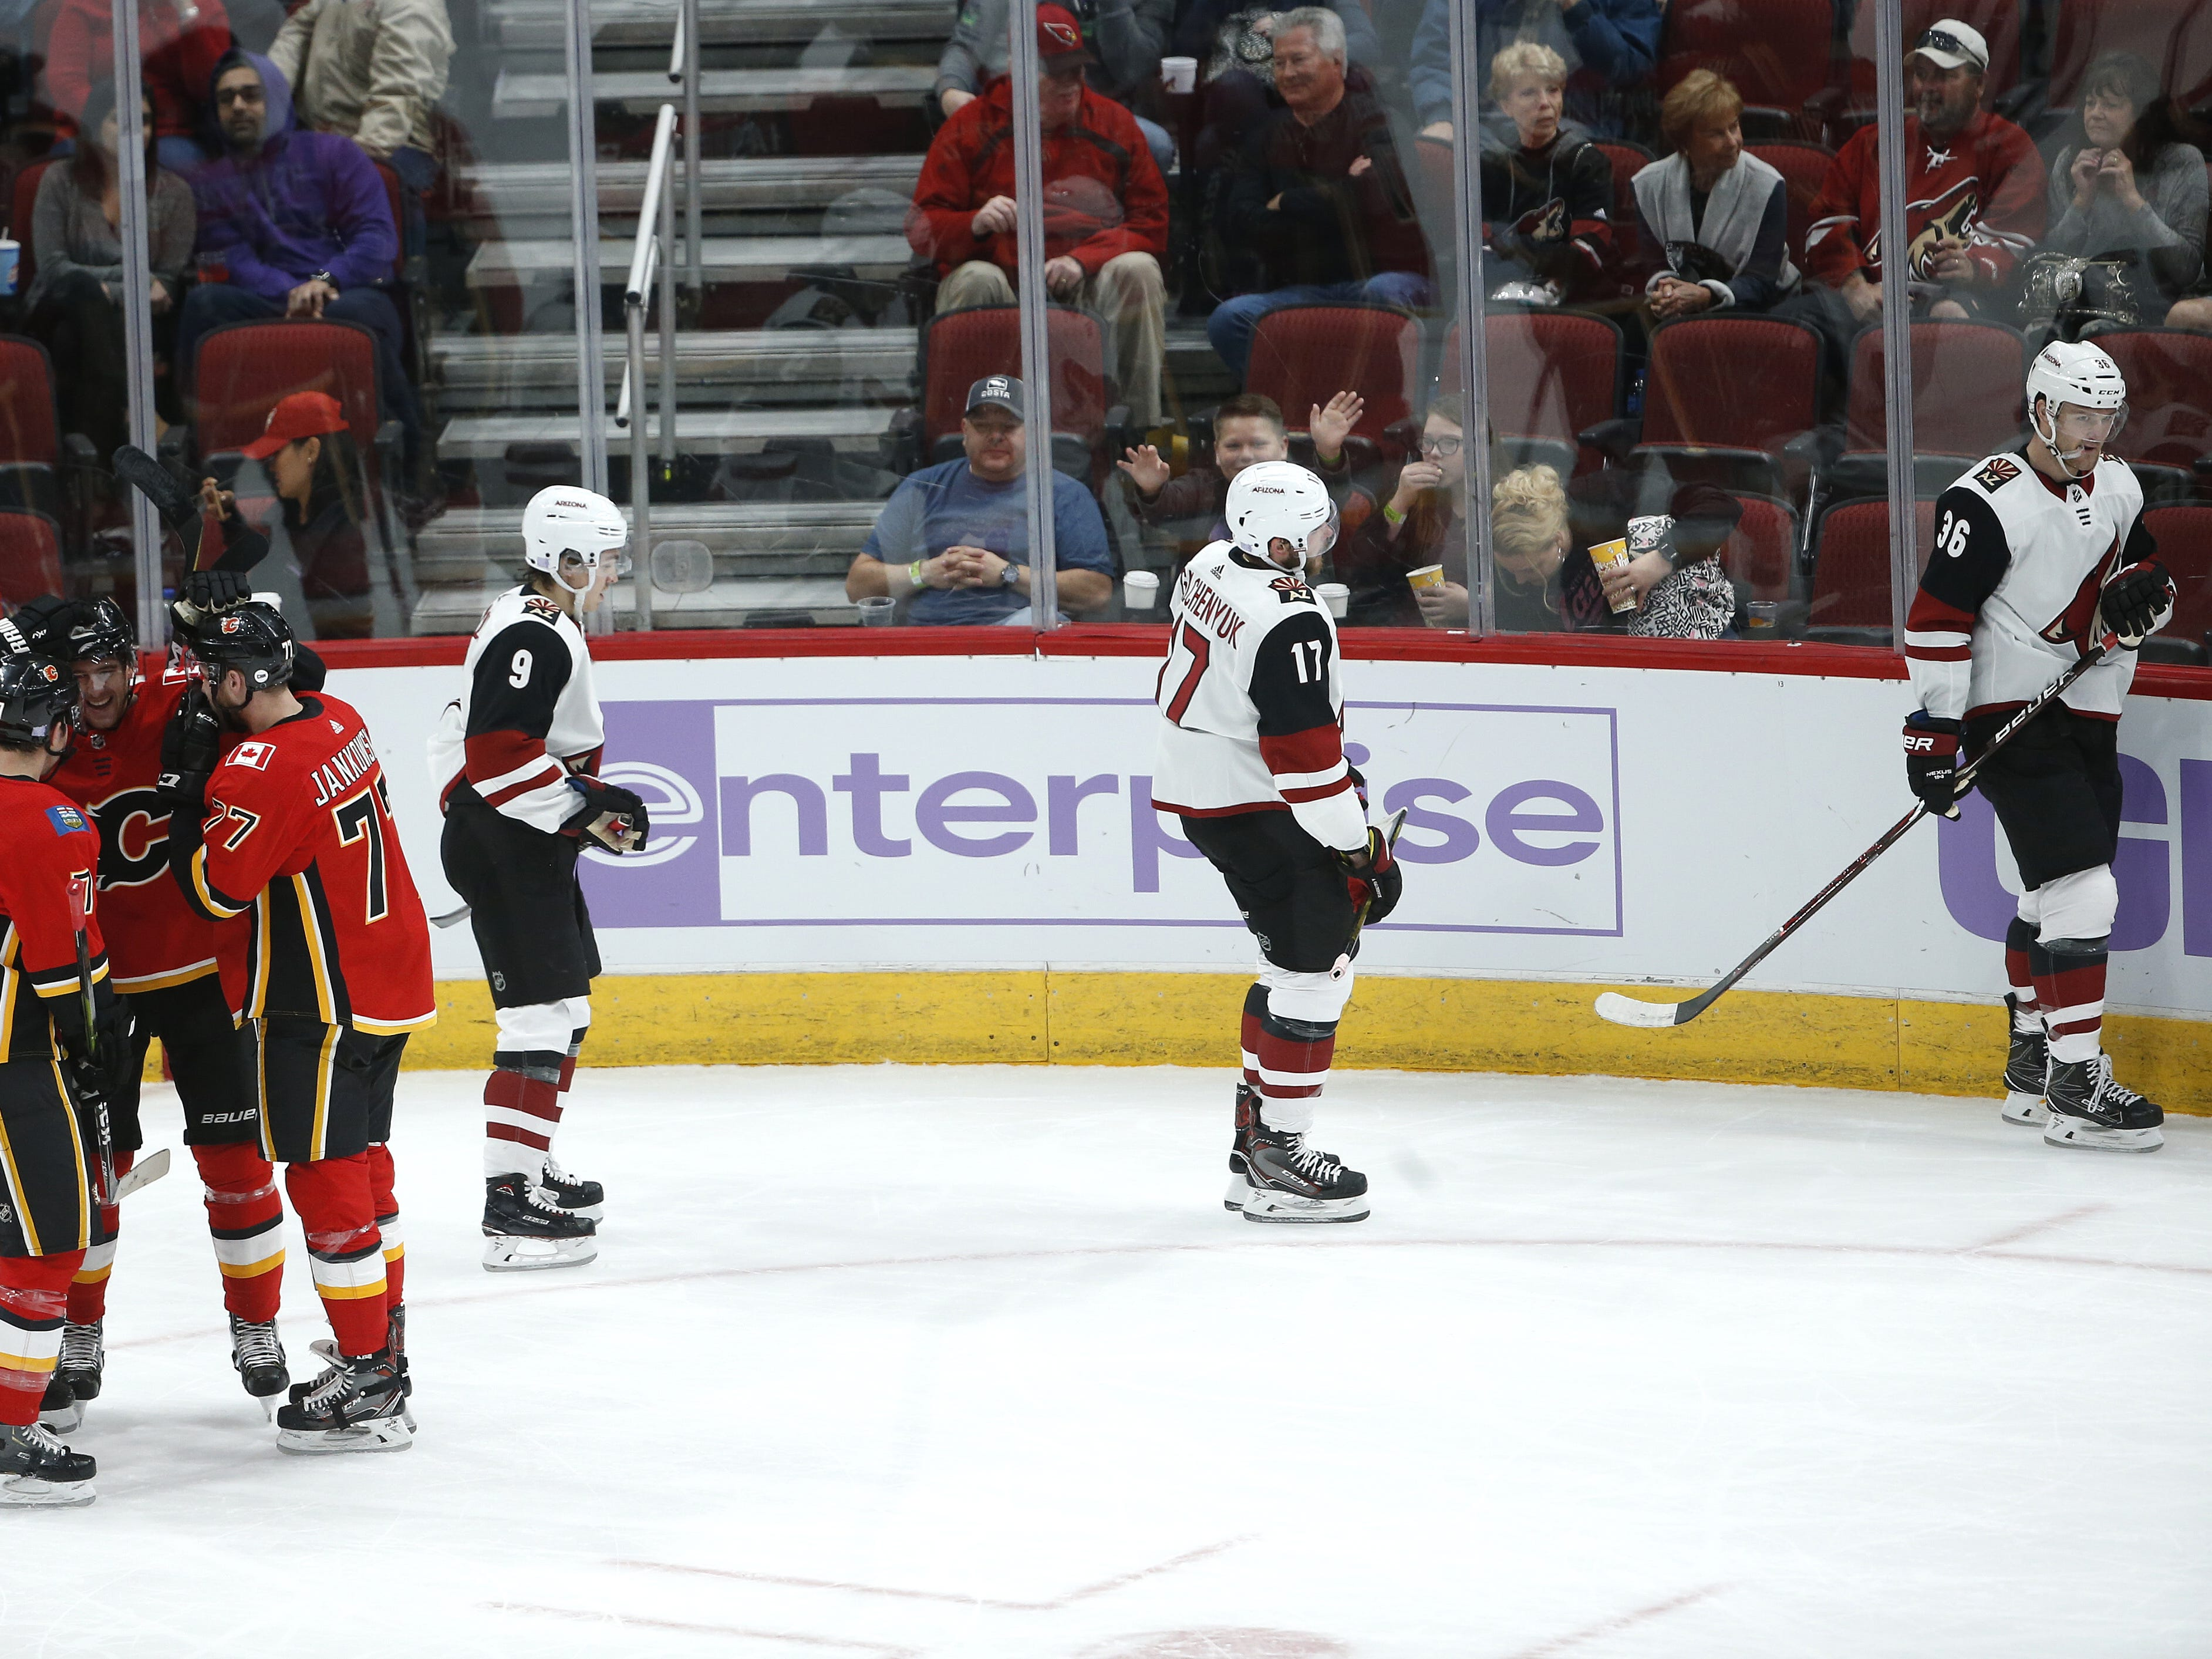 The Flames celebrate a short-handed goal against the Coyotes during the first period at Gila River Arena in Glendale, Ariz. on November 25, 2018.